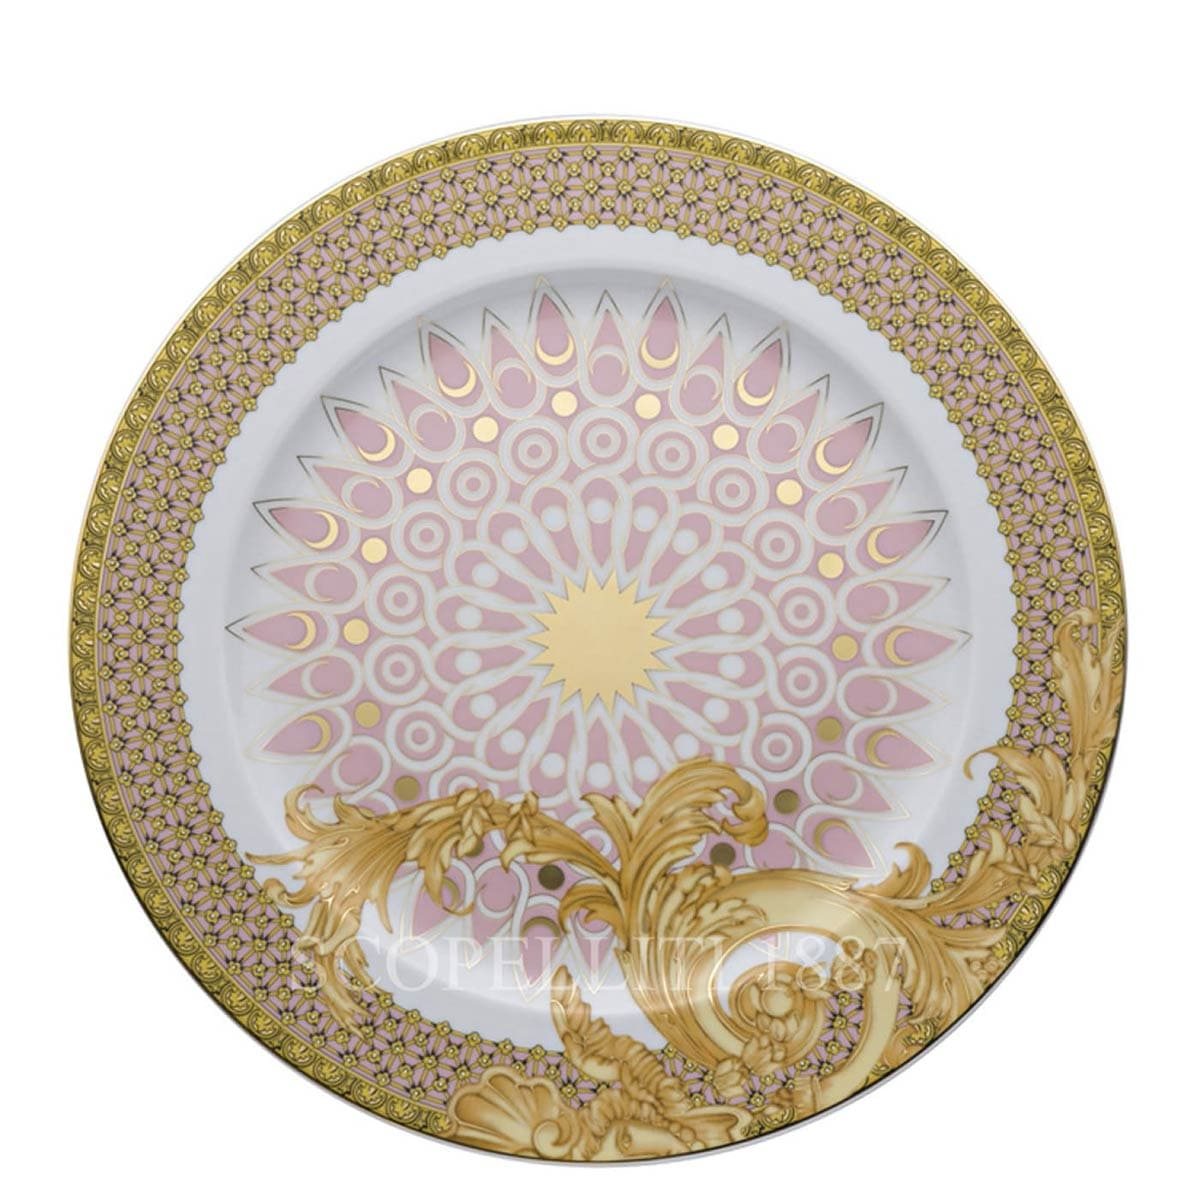 versace italian design les reves byzantins service plate